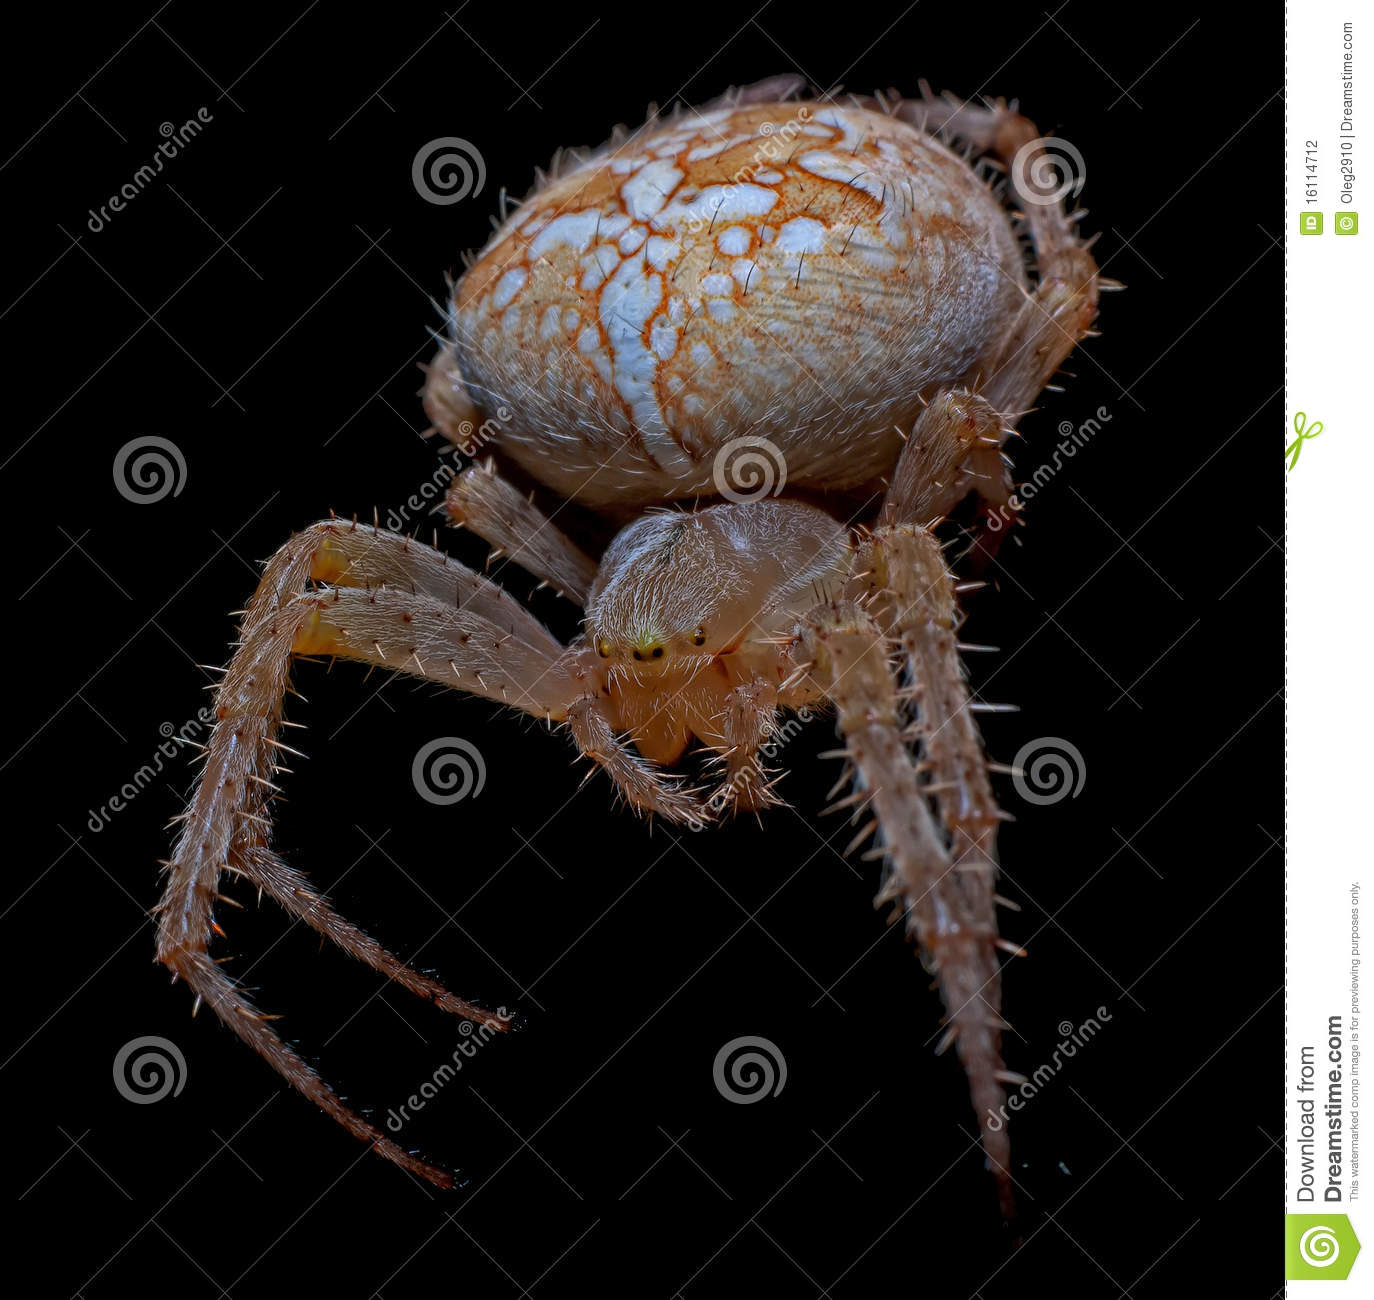 Big Scary Spider Stock Photography - Image: 16114712